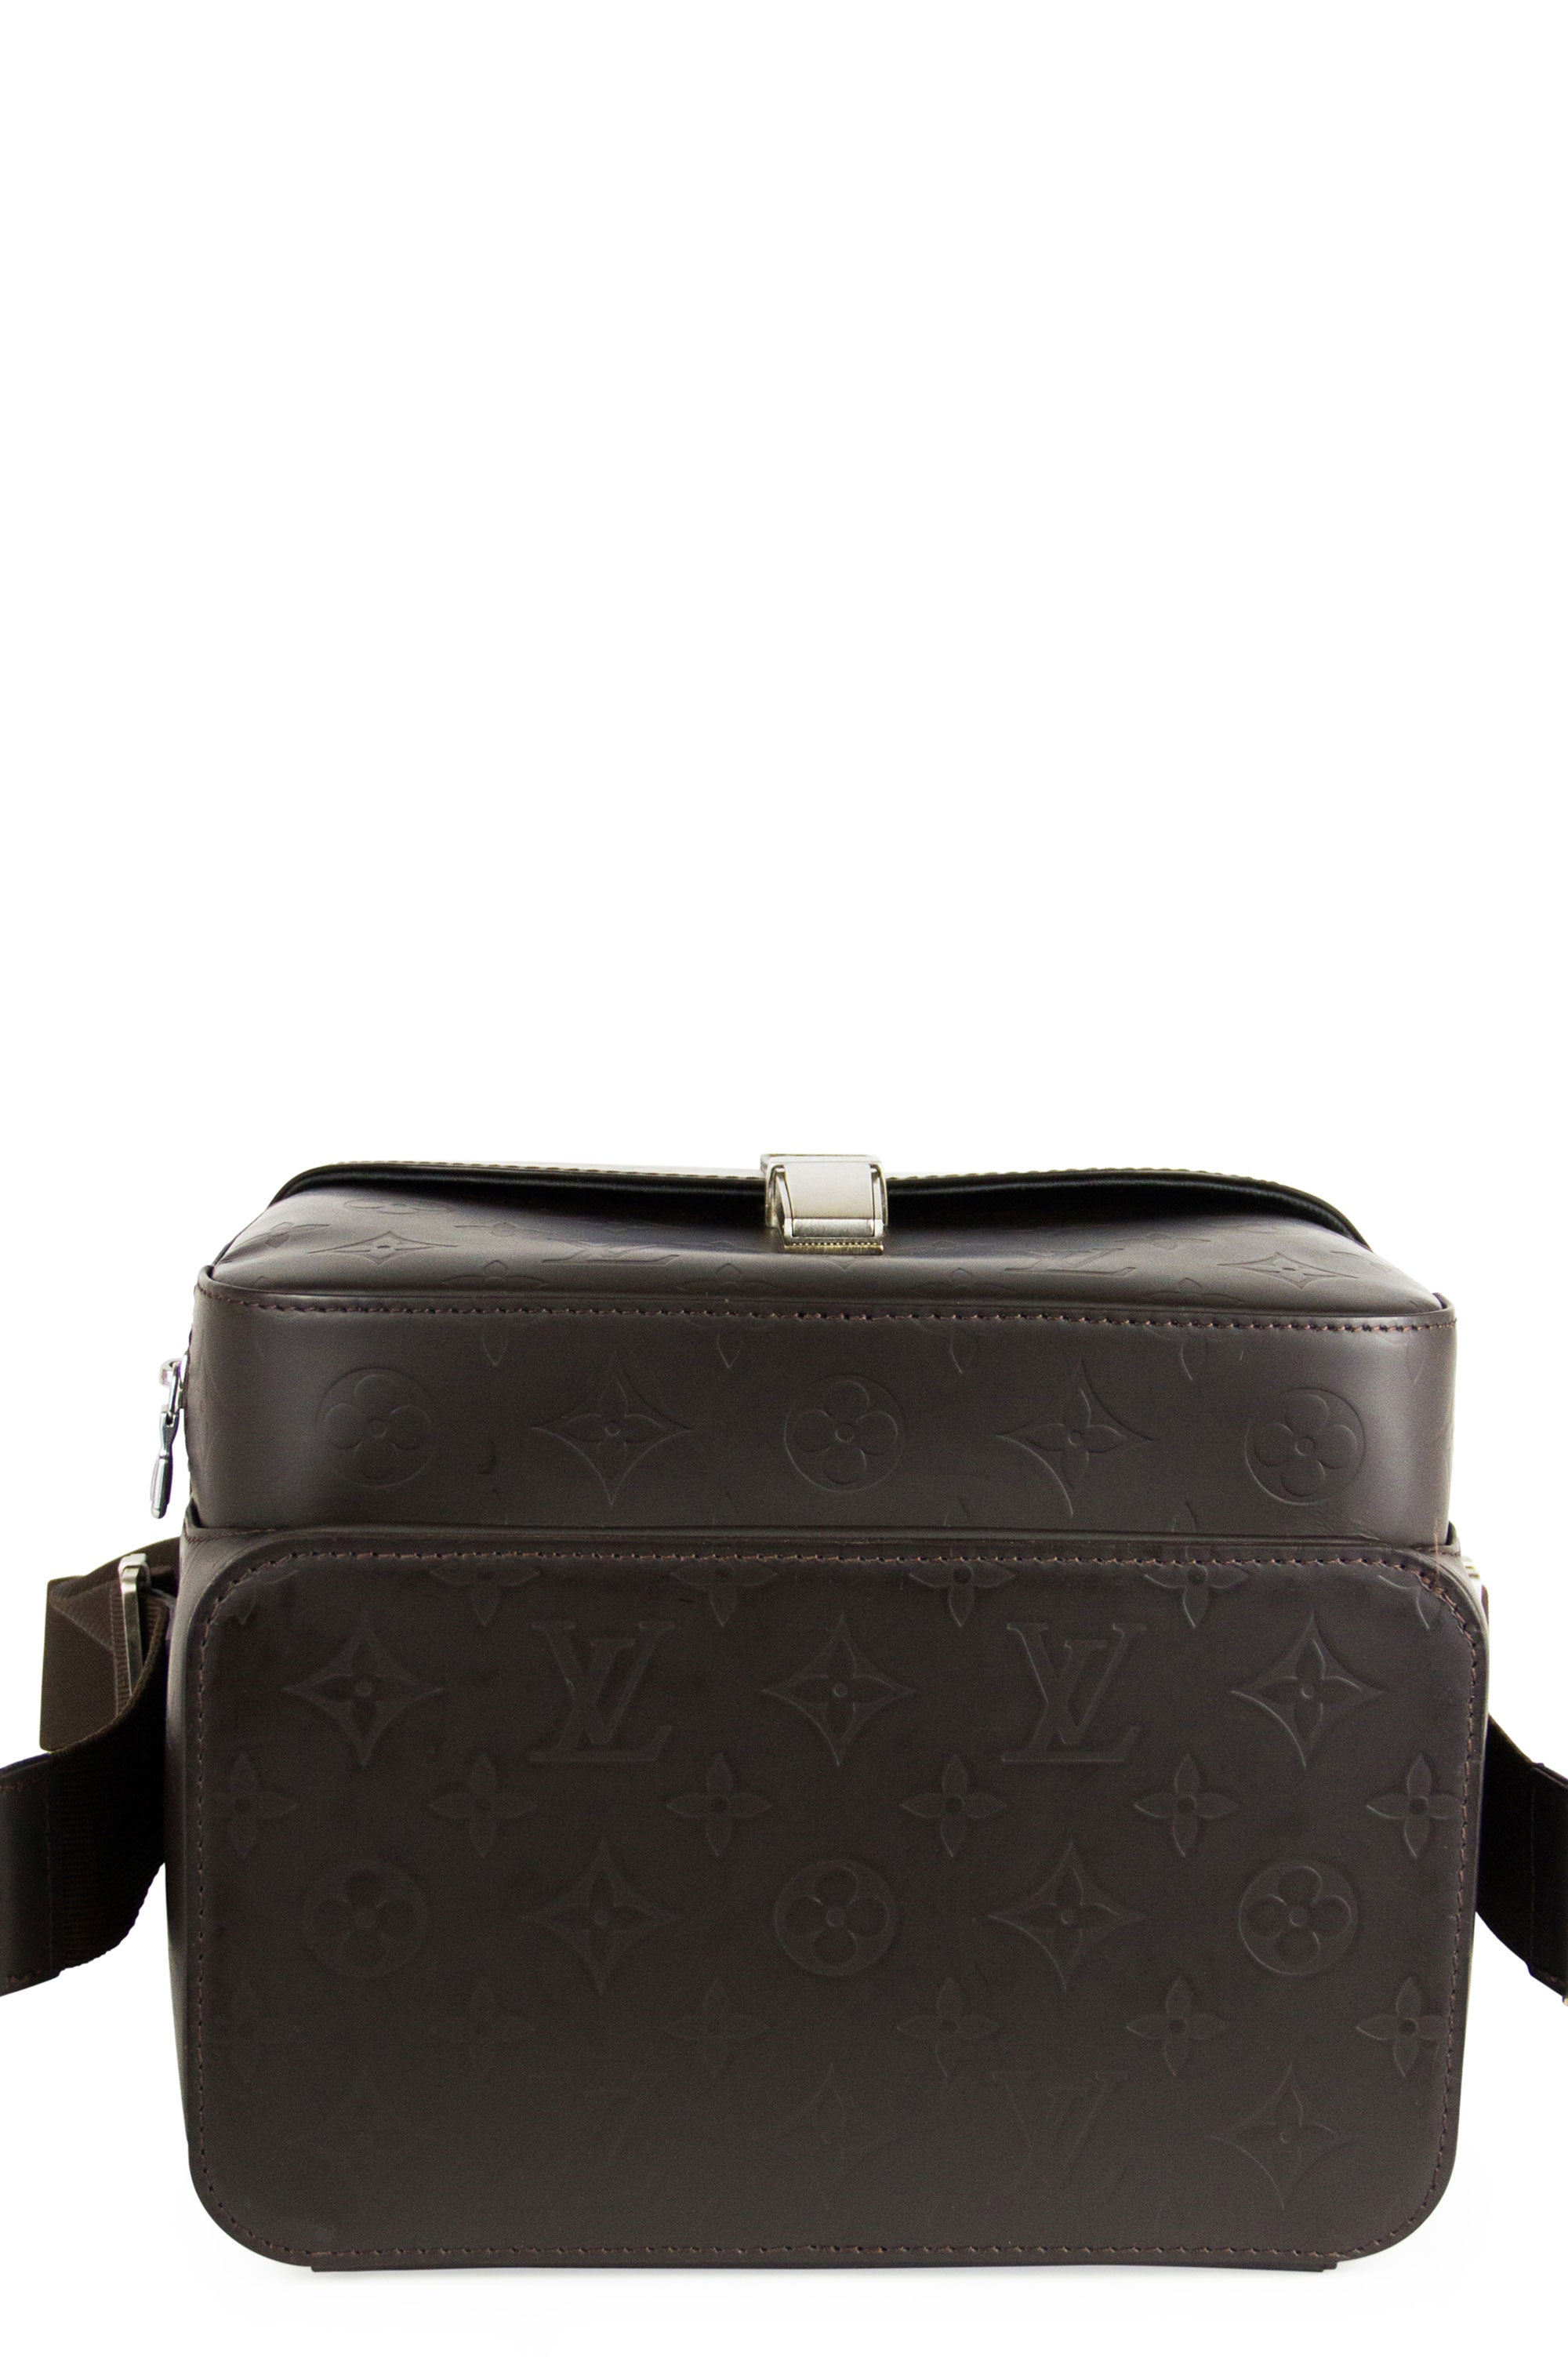 LOUIS VUITTON Grace Charlie Camera Bag